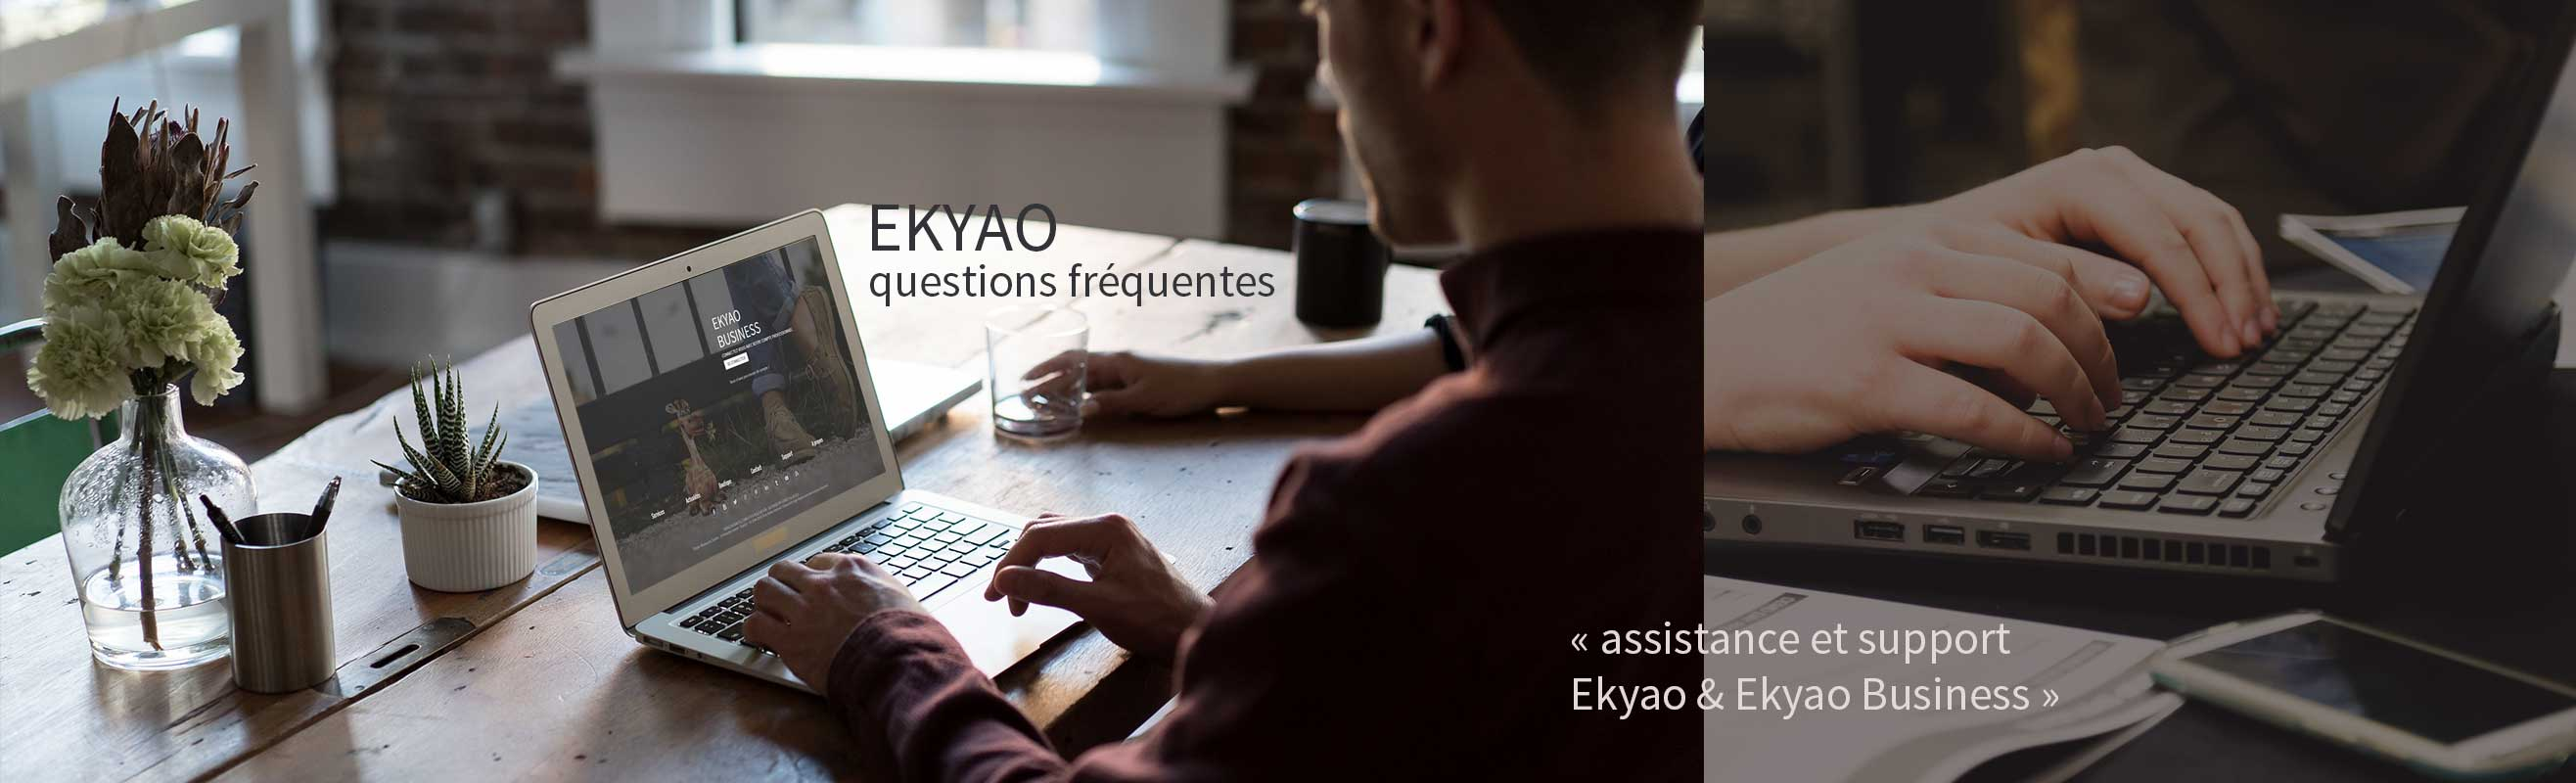 Ekyao Business - Faq. Assistance et support Ekyao et Ekyao Business